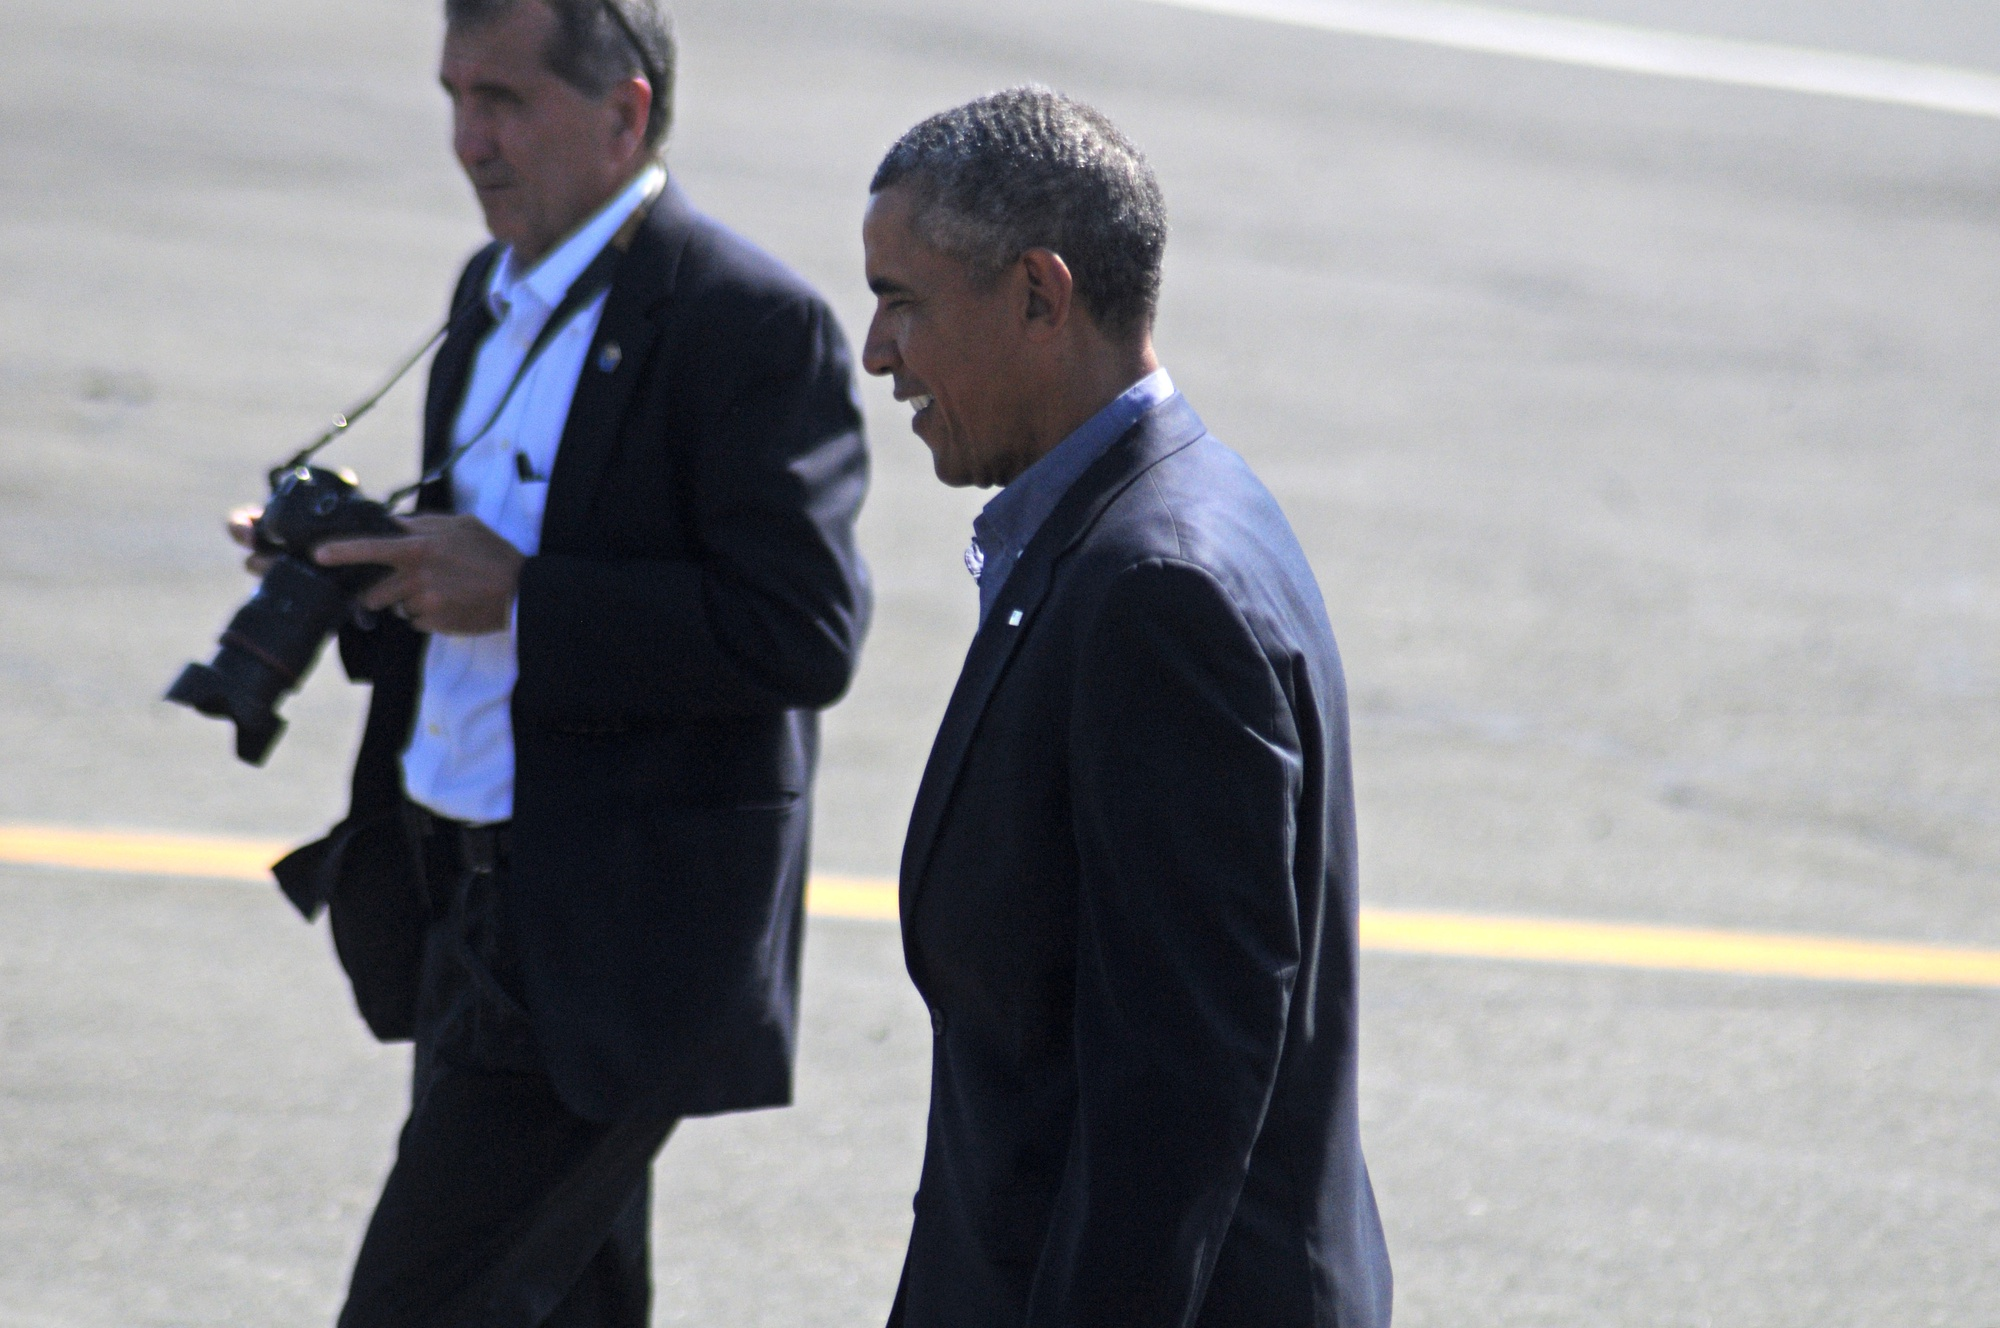 President Barack Obama walks across the tarmac after arriving in Boston on Monday.